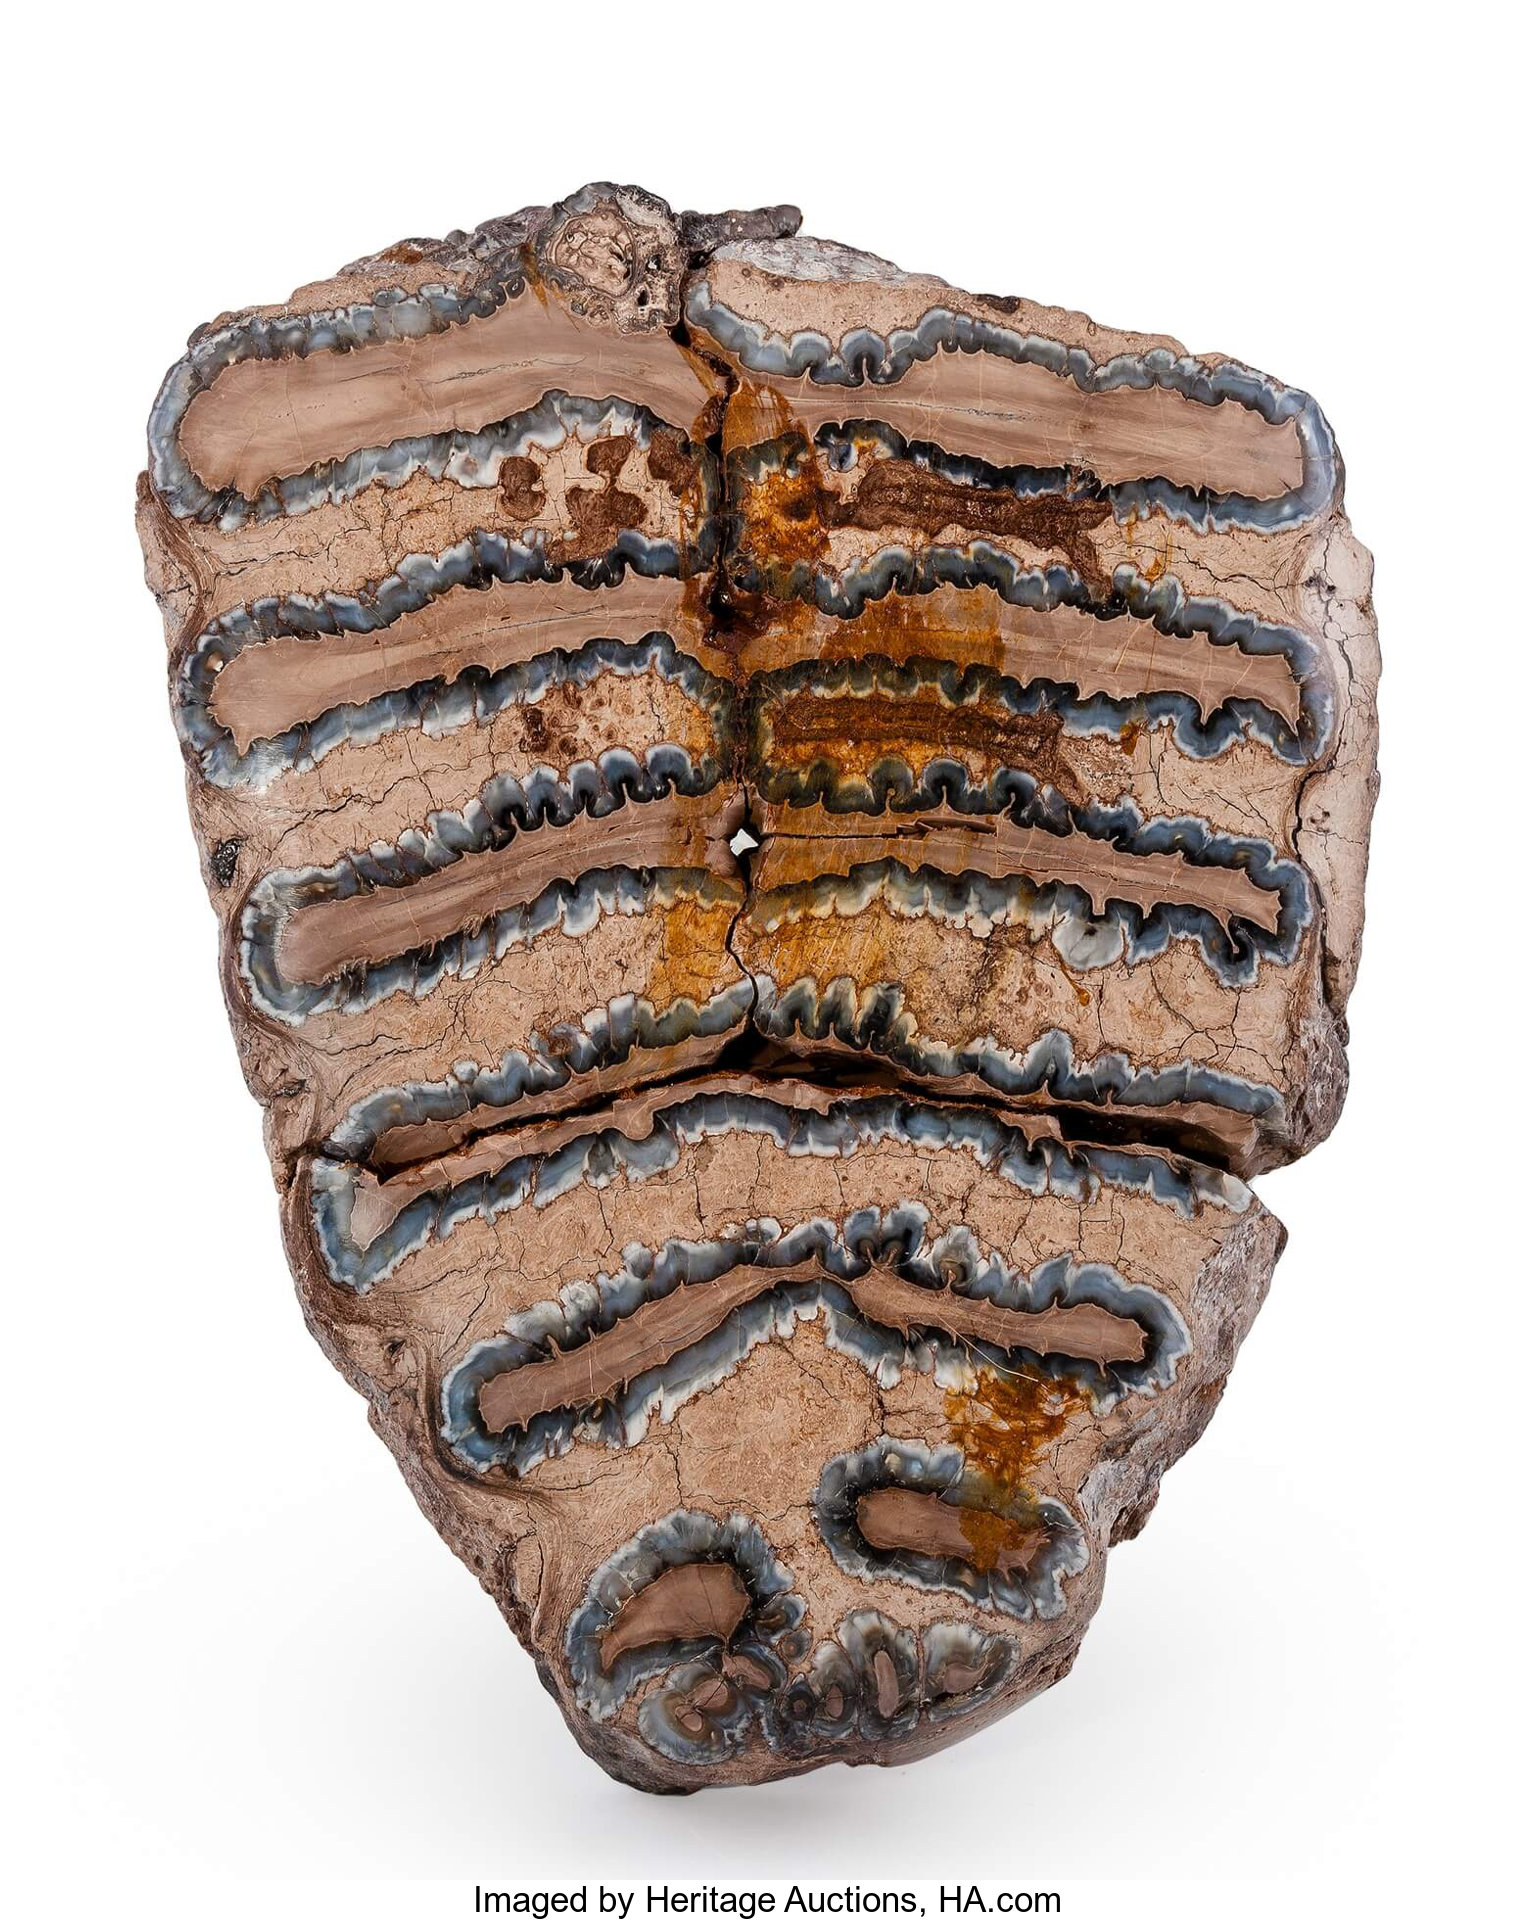 Polished Woolly Mammoth Tooth  Mammuthus primigenius